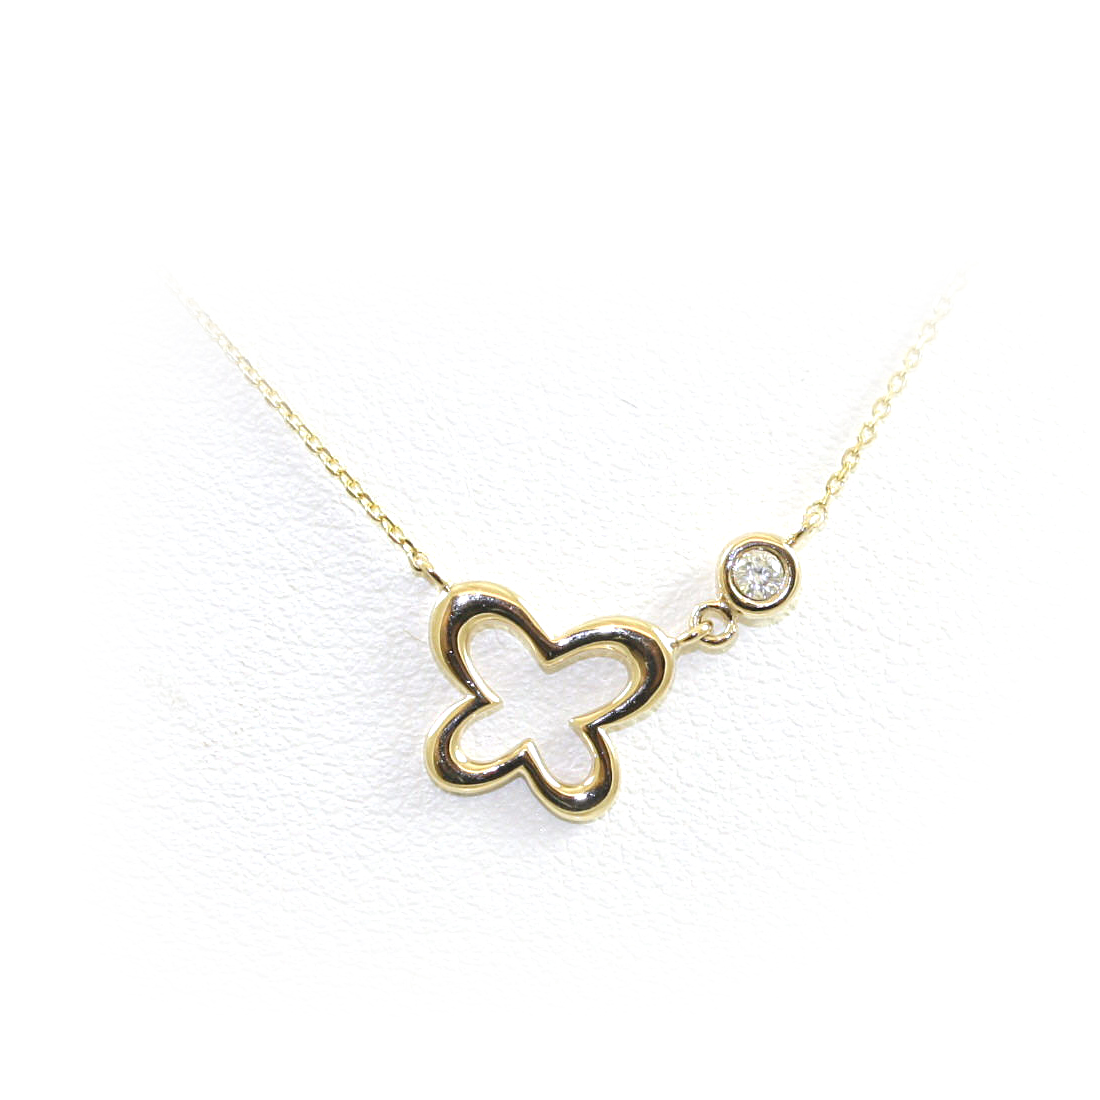 14 Karat Yellow Gold Open Clover Diamond Necklace